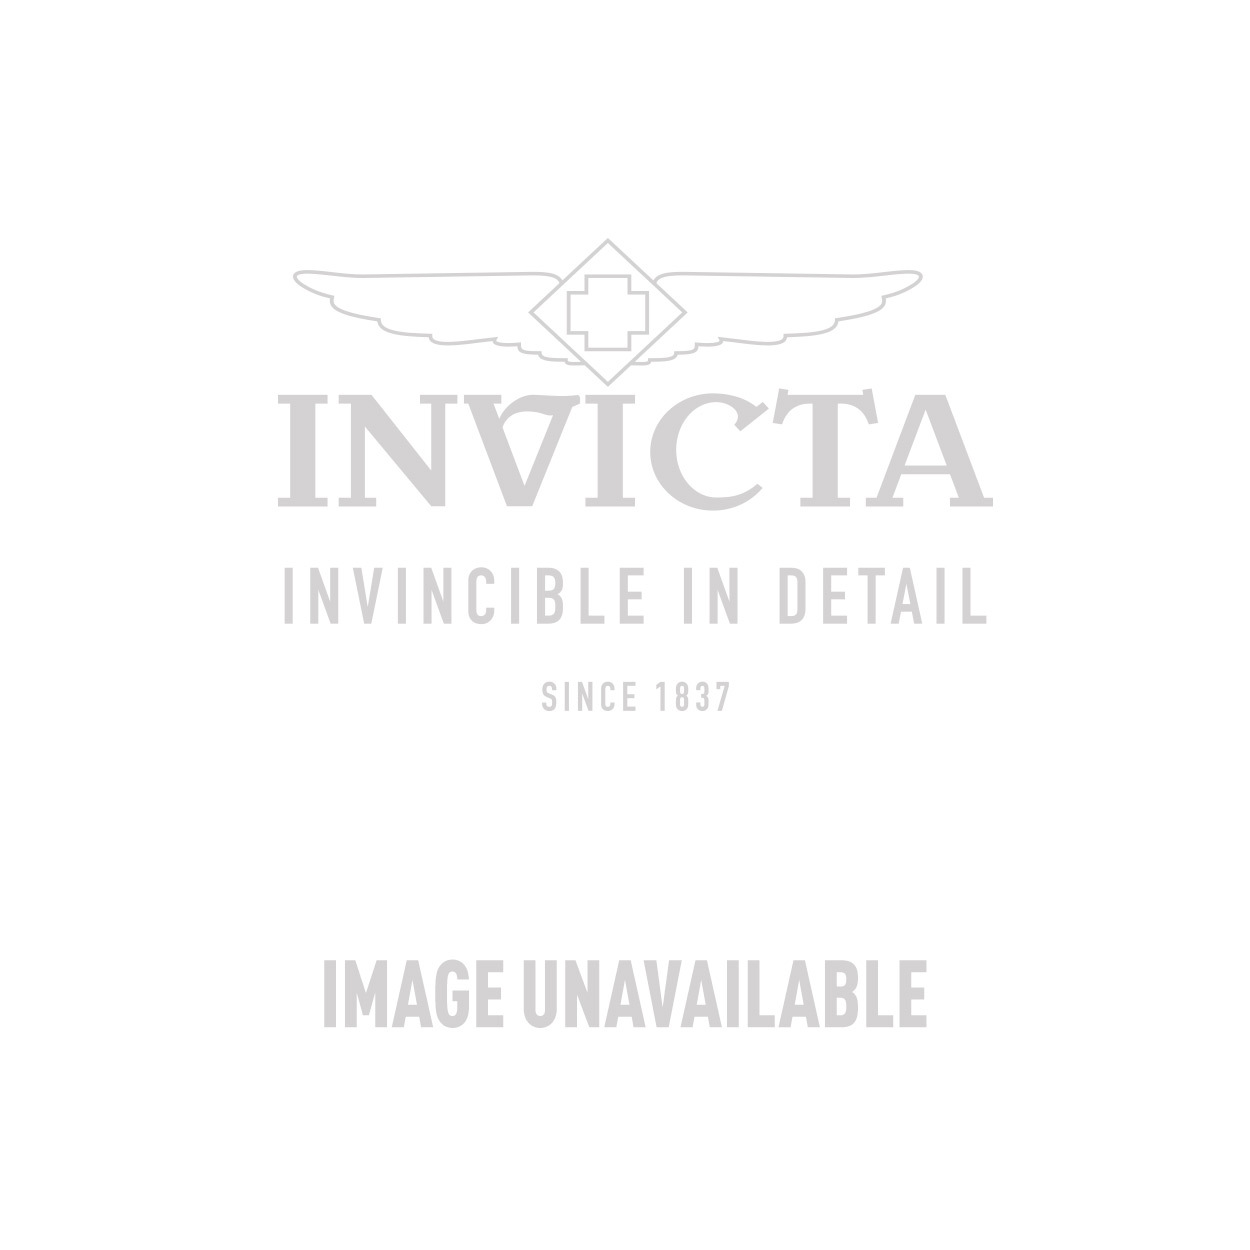 Invicta Angel Swiss Movement Quartz Watch - Gold case with Gold tone Stainless Steel band - Model 15868